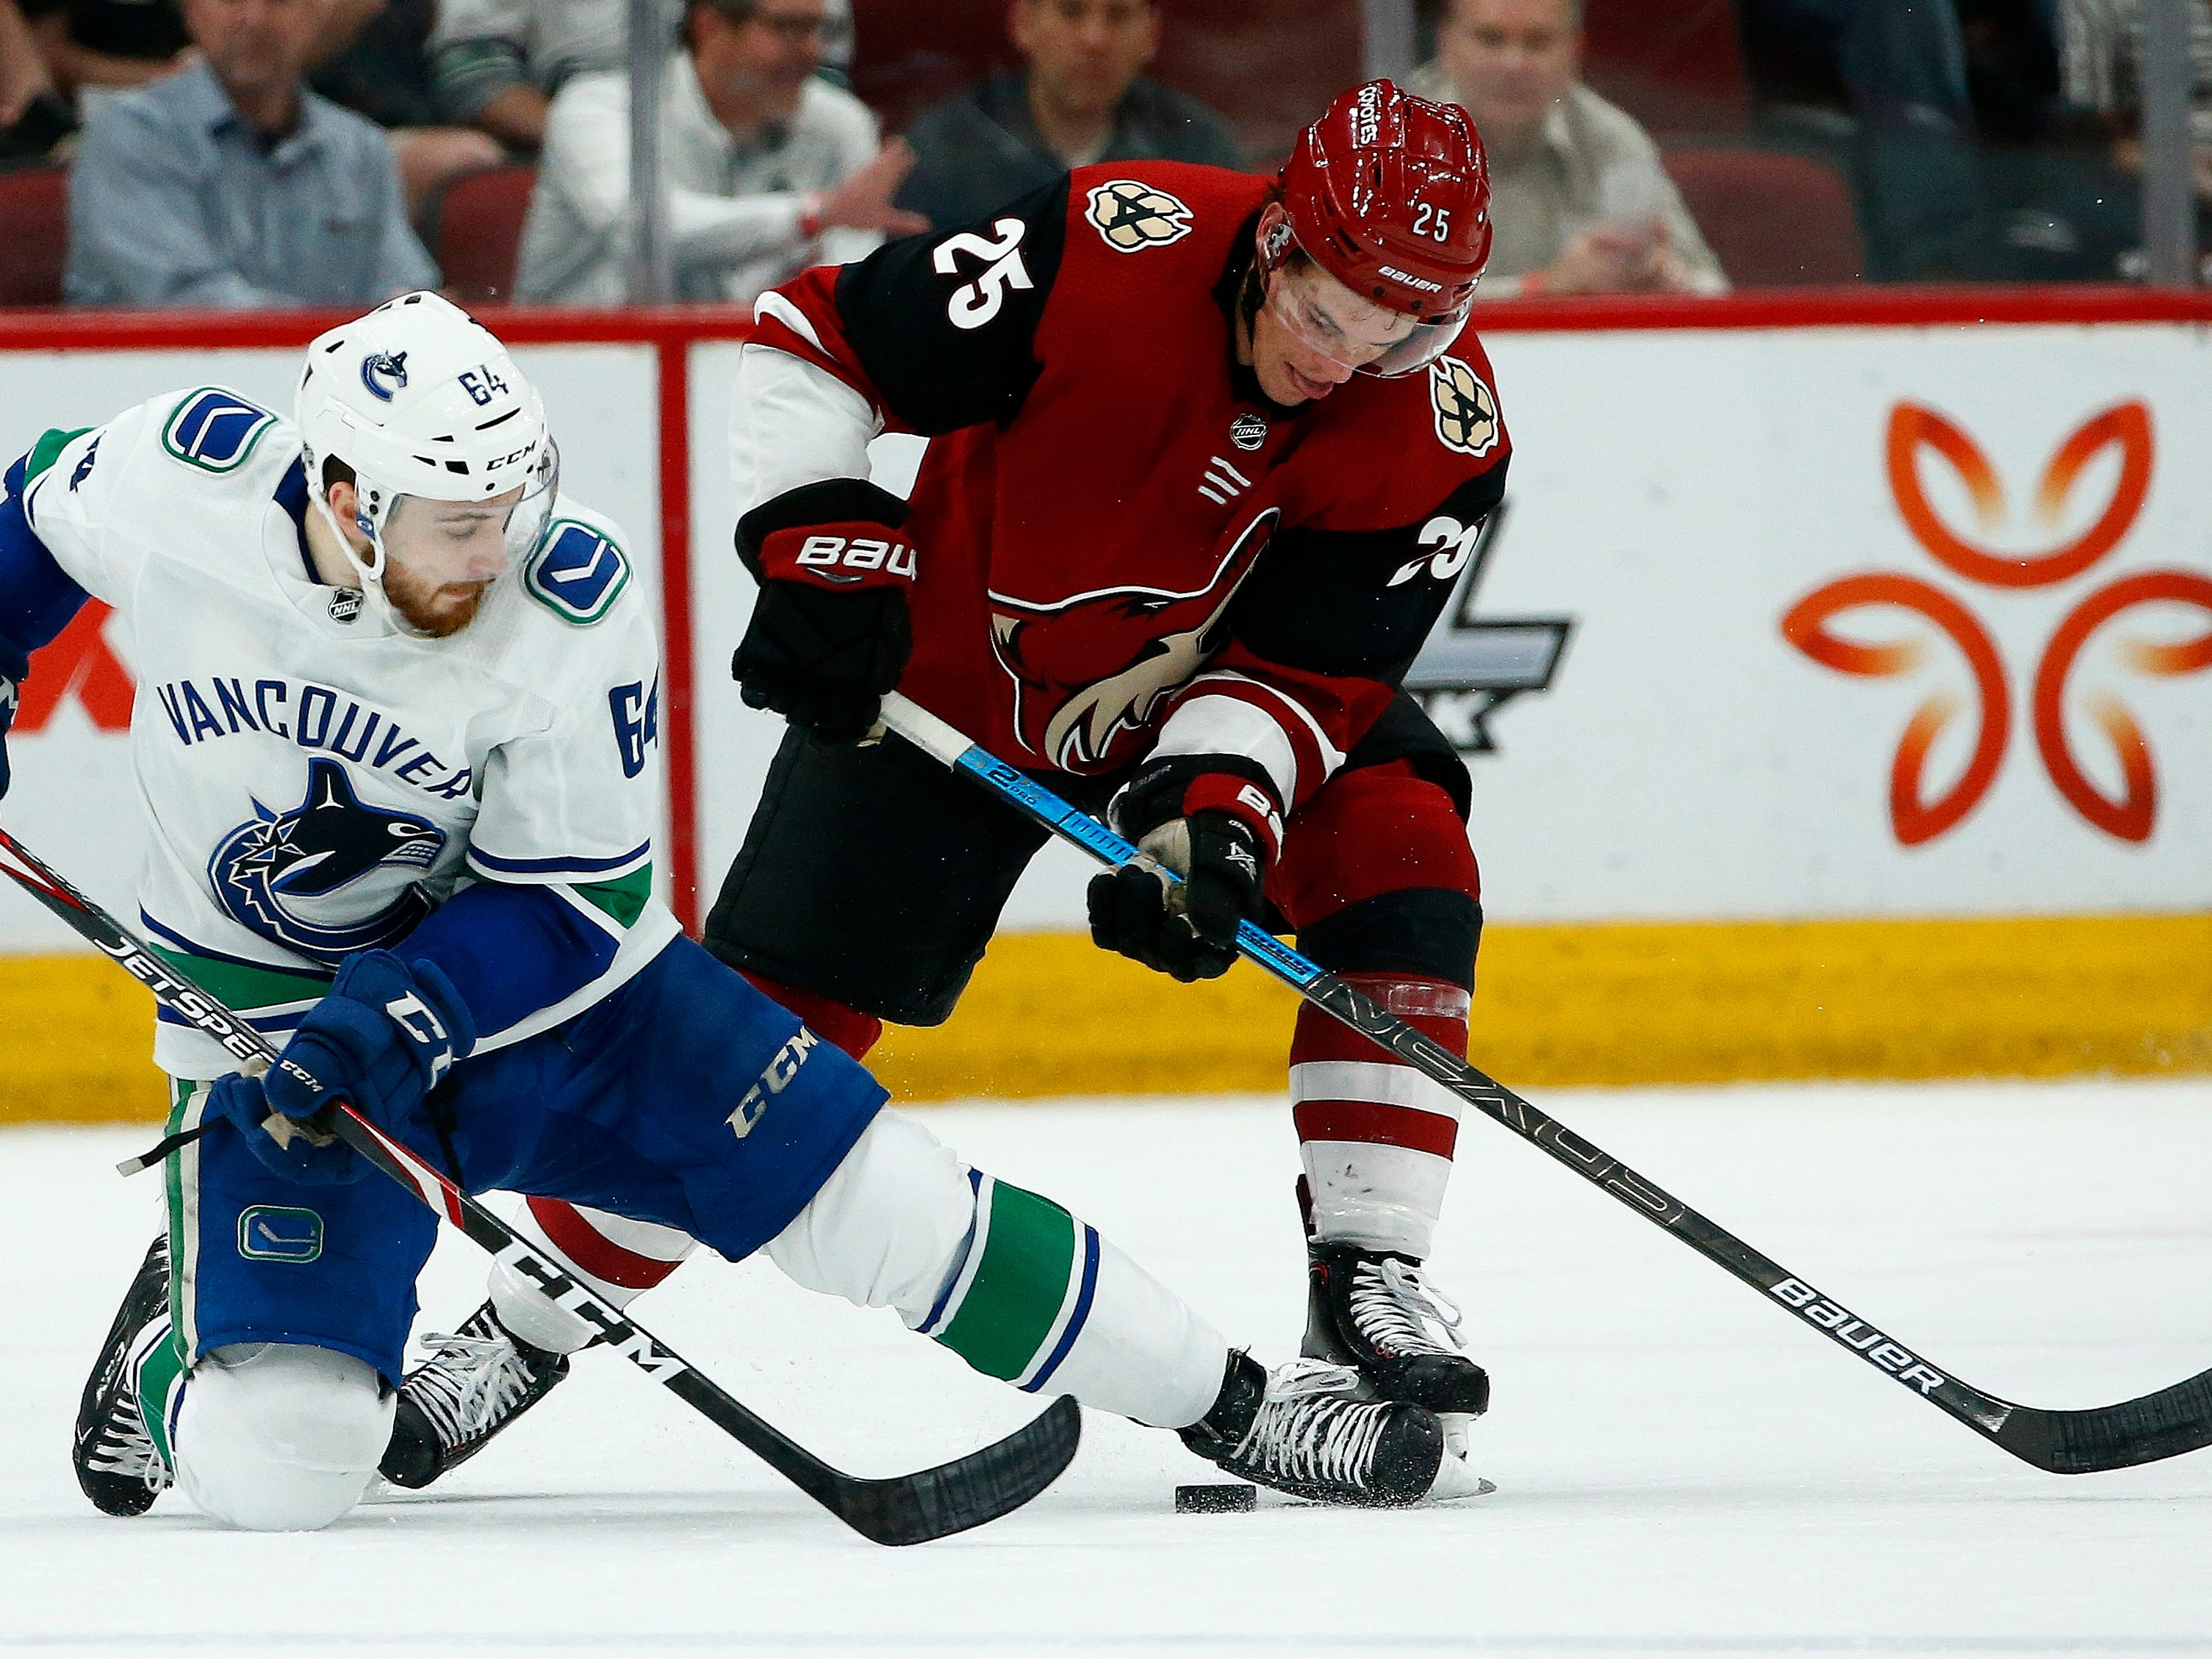 Vancouver Canucks center Tyler Motte (64) battles with Arizona Coyotes center Nick Cousins (25) for the puck during the first period of an NHL hockey game Thursday, Feb. 28, 2019, in Glendale, Ariz.